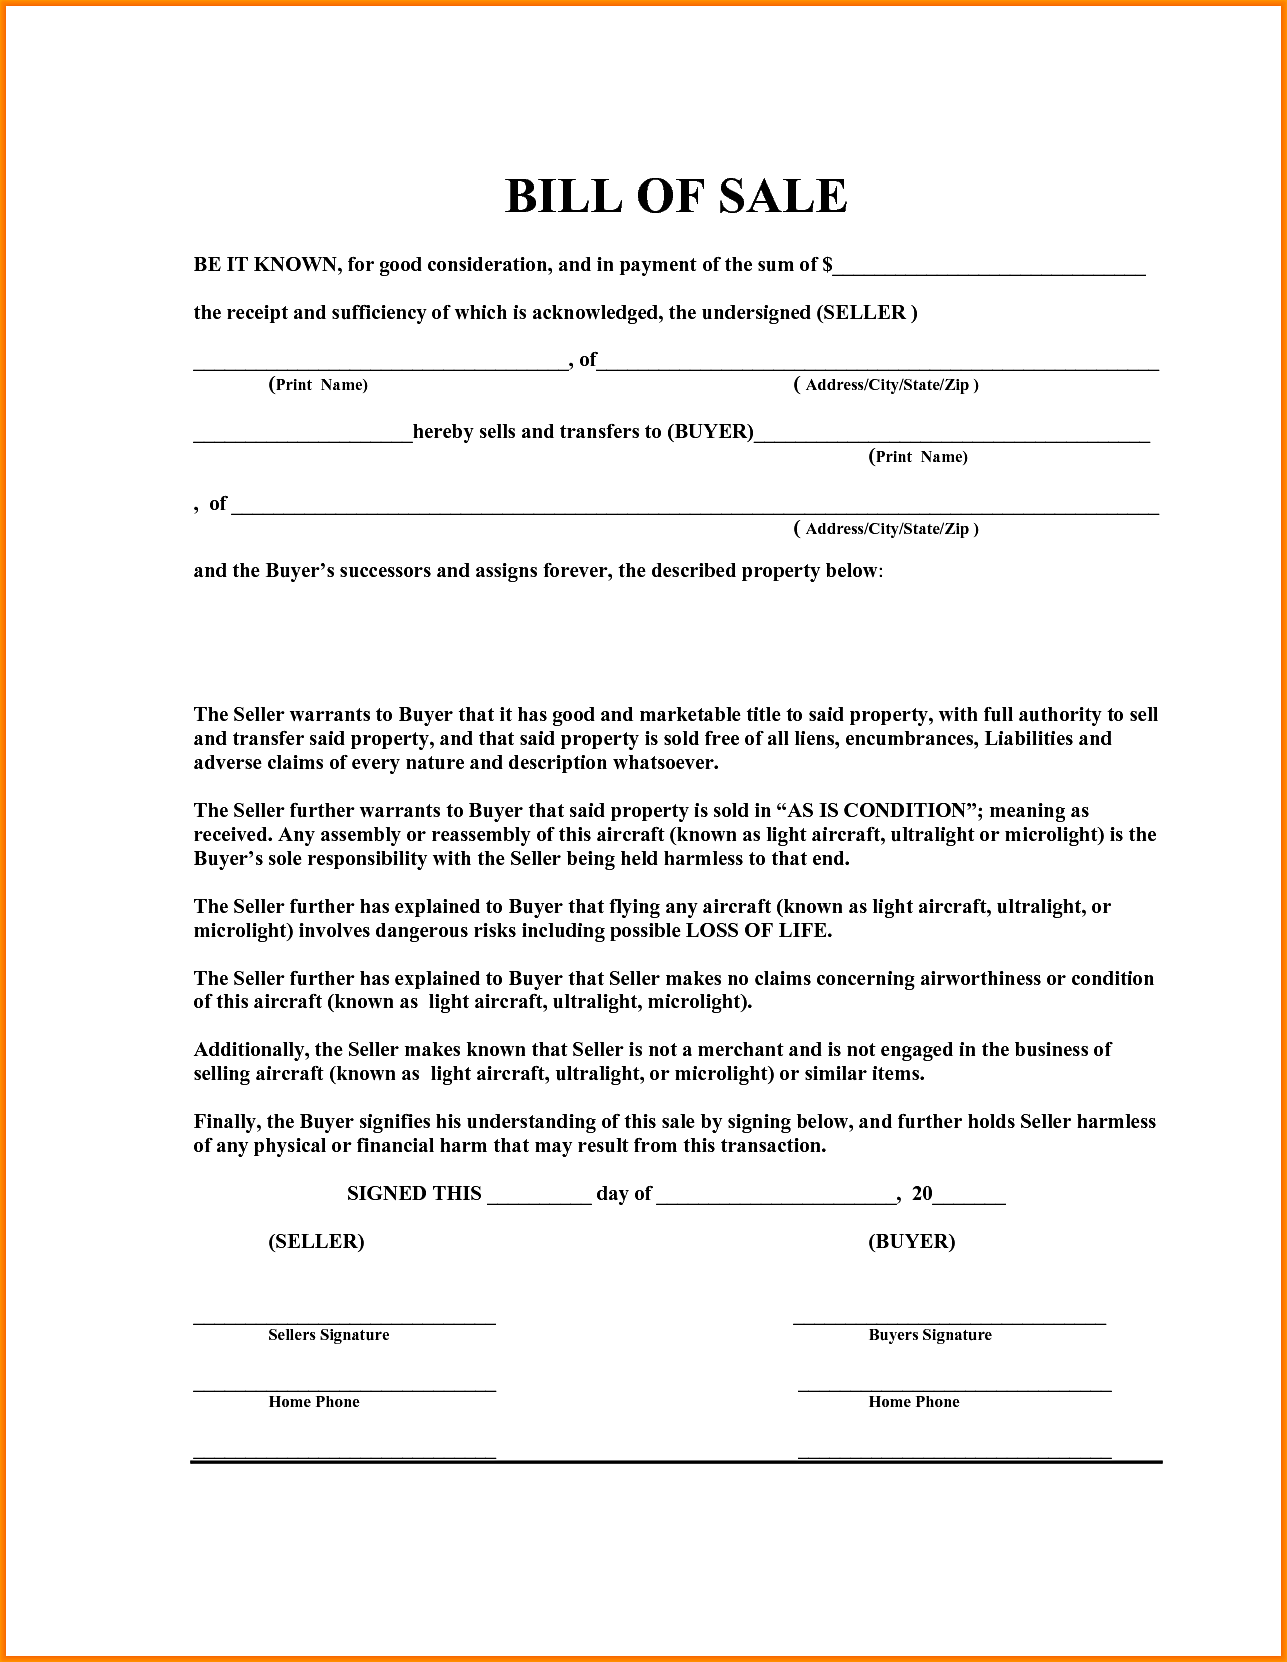 Bill Of Sale Template for Boat and Free Boat Vessel Bill Of Sale form Word Pdf Eforms Fillable forms